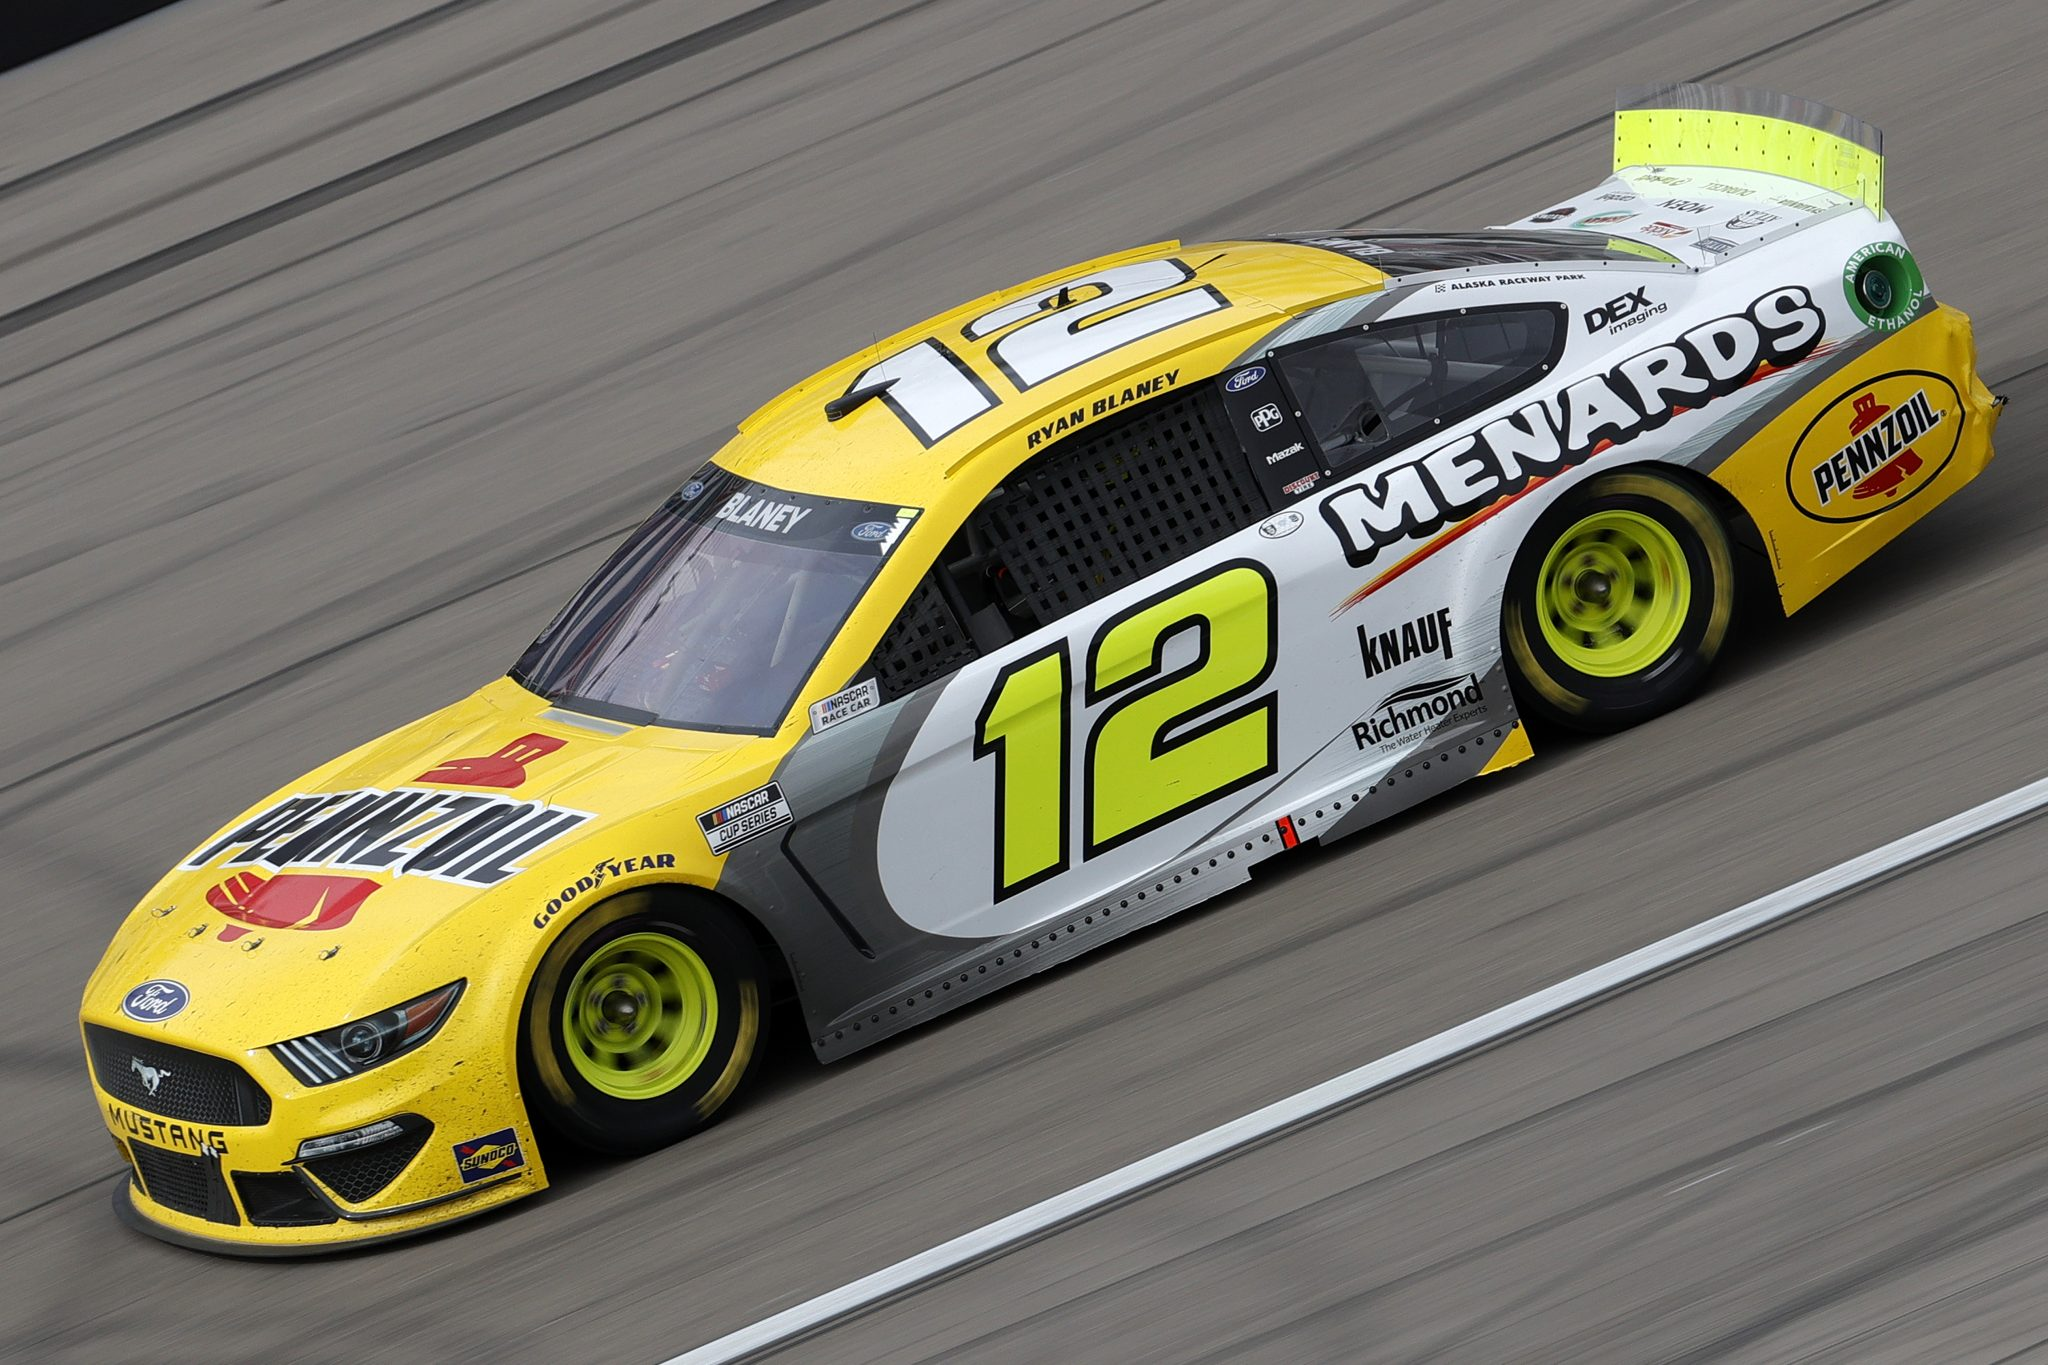 LAS VEGAS, NEVADA - MARCH 07: Ryan Blaney, driver of the #12 Menards/Pennzoil Ford, drives during the NASCAR Cup Series Pennzoil 400 presented by Jiffy Lube at the Las Vegas Motor Speedway on March 07, 2021 in Las Vegas, Nevada. (Photo by Chris Graythen/Getty Images) | Getty Images